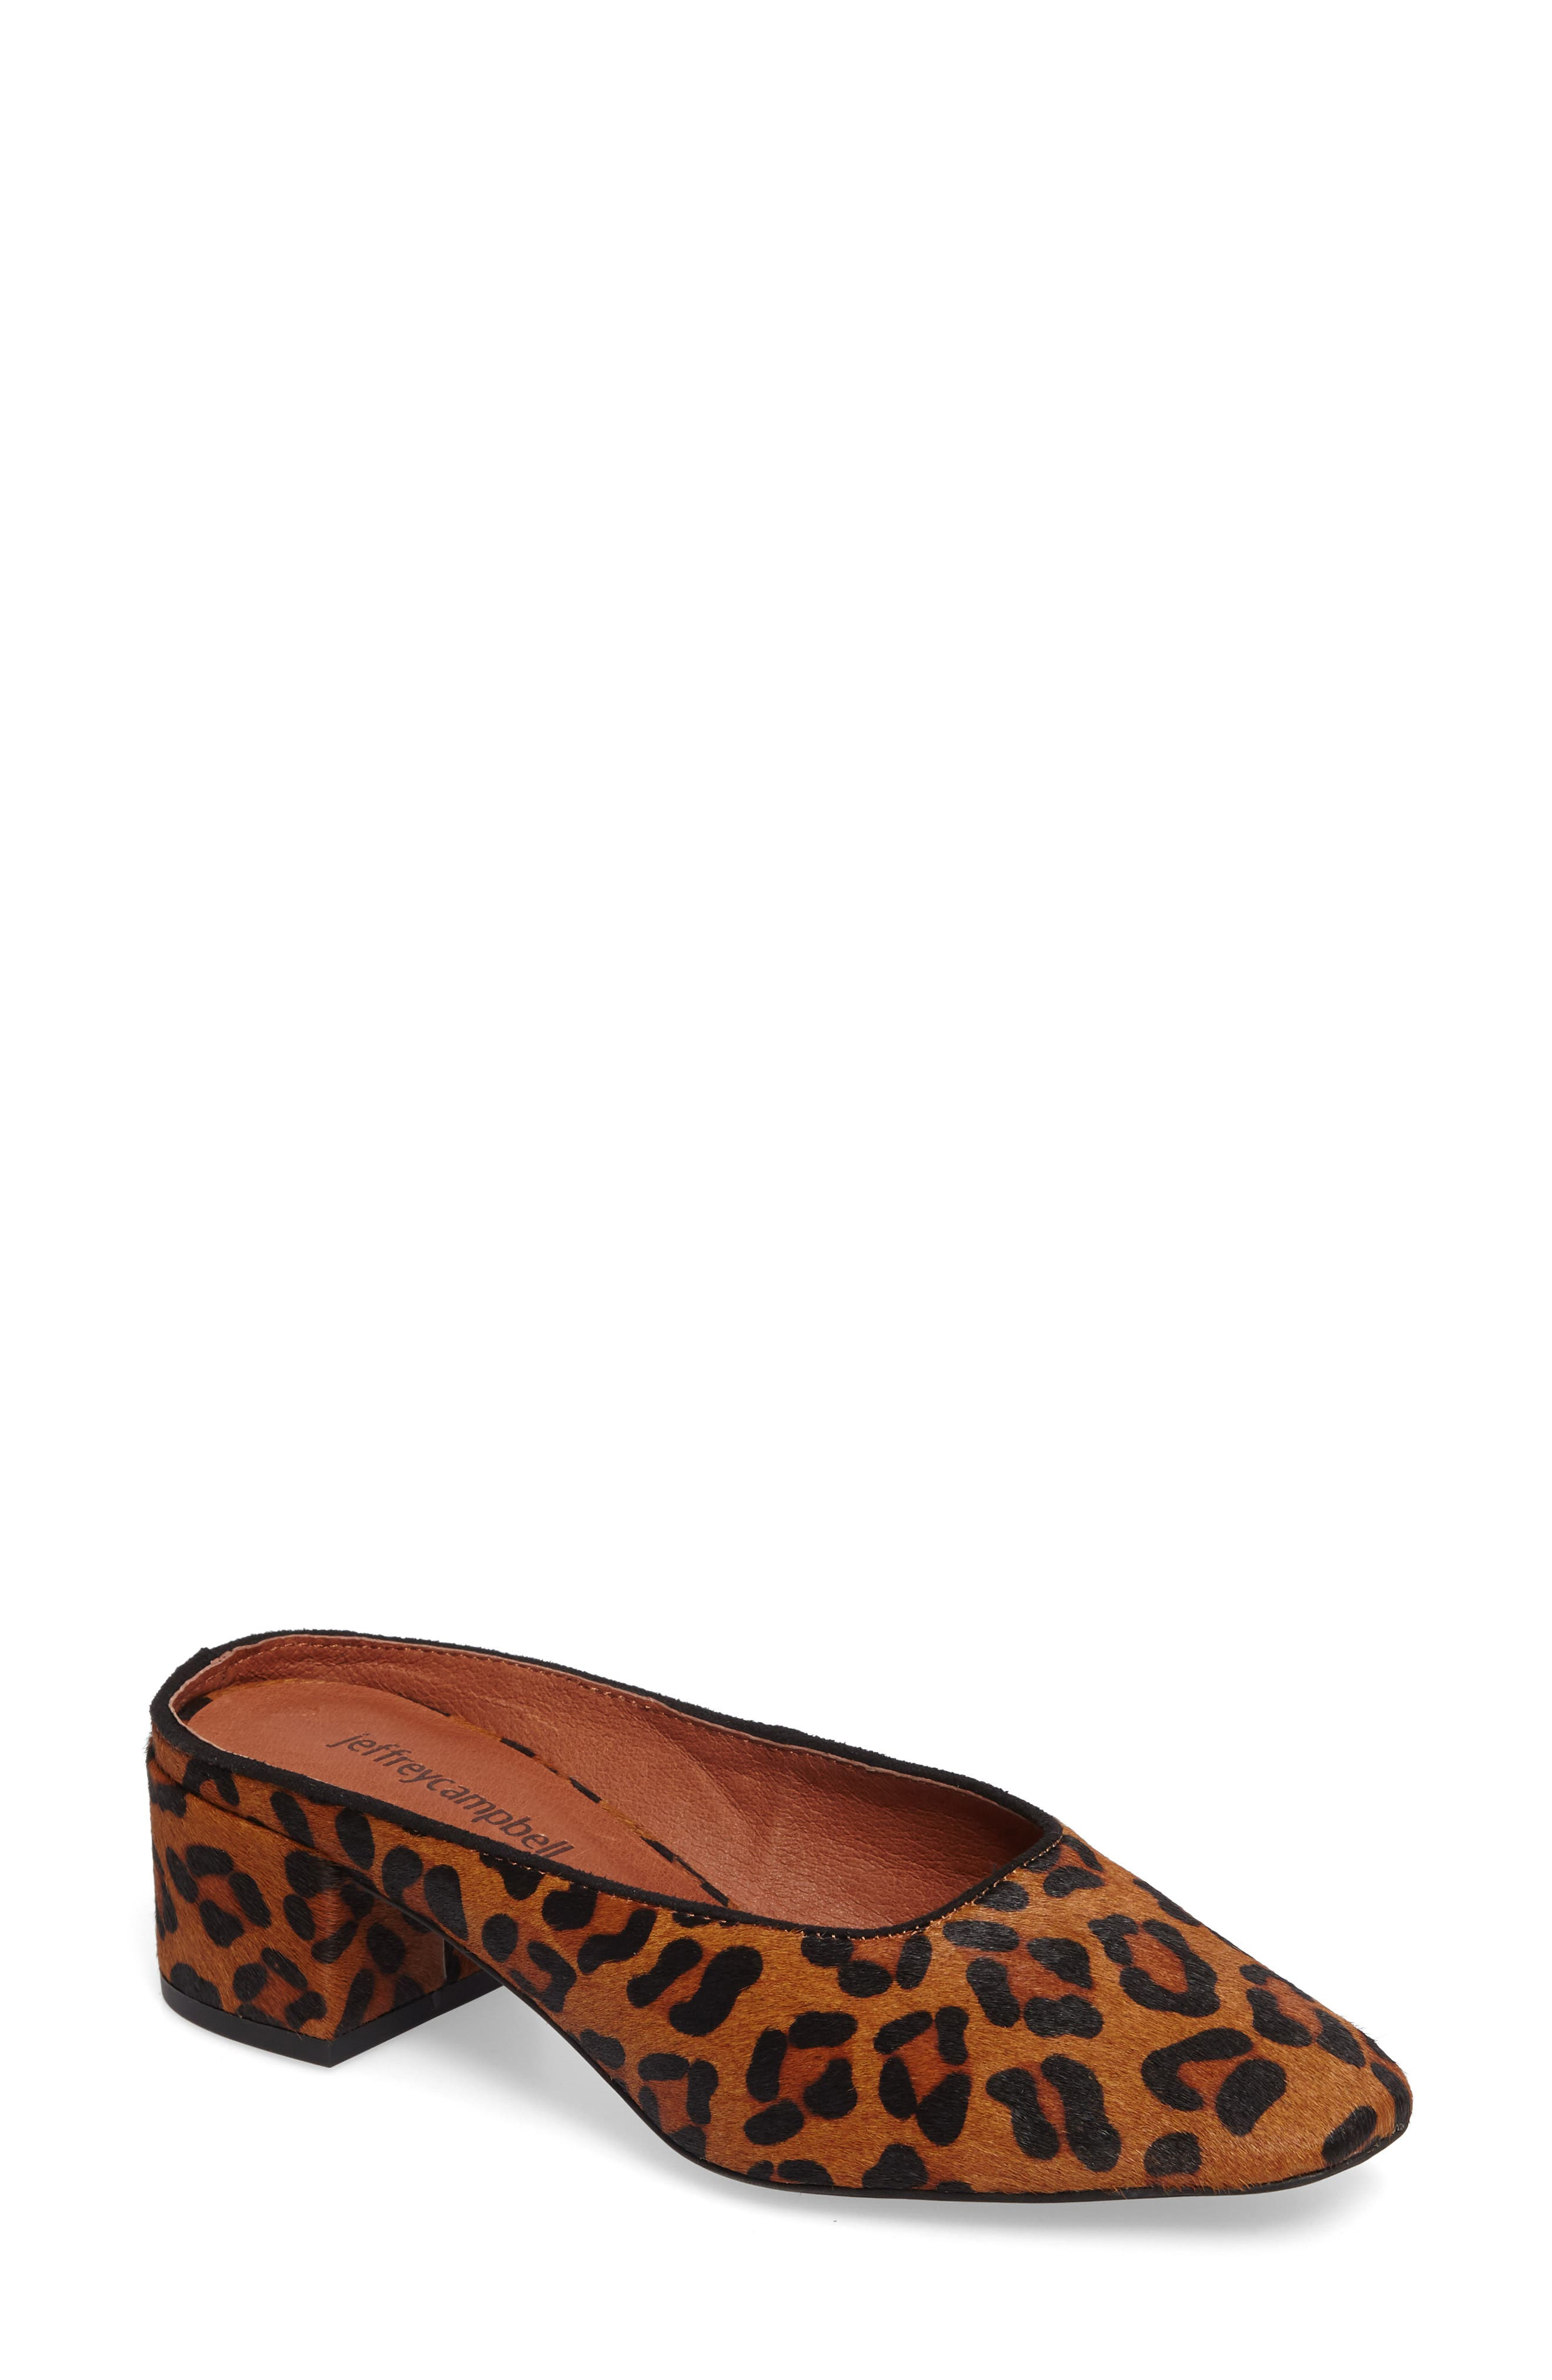 Alternate Image 1 Selected - Jeffrey Campbell Oceane Mule (Women)